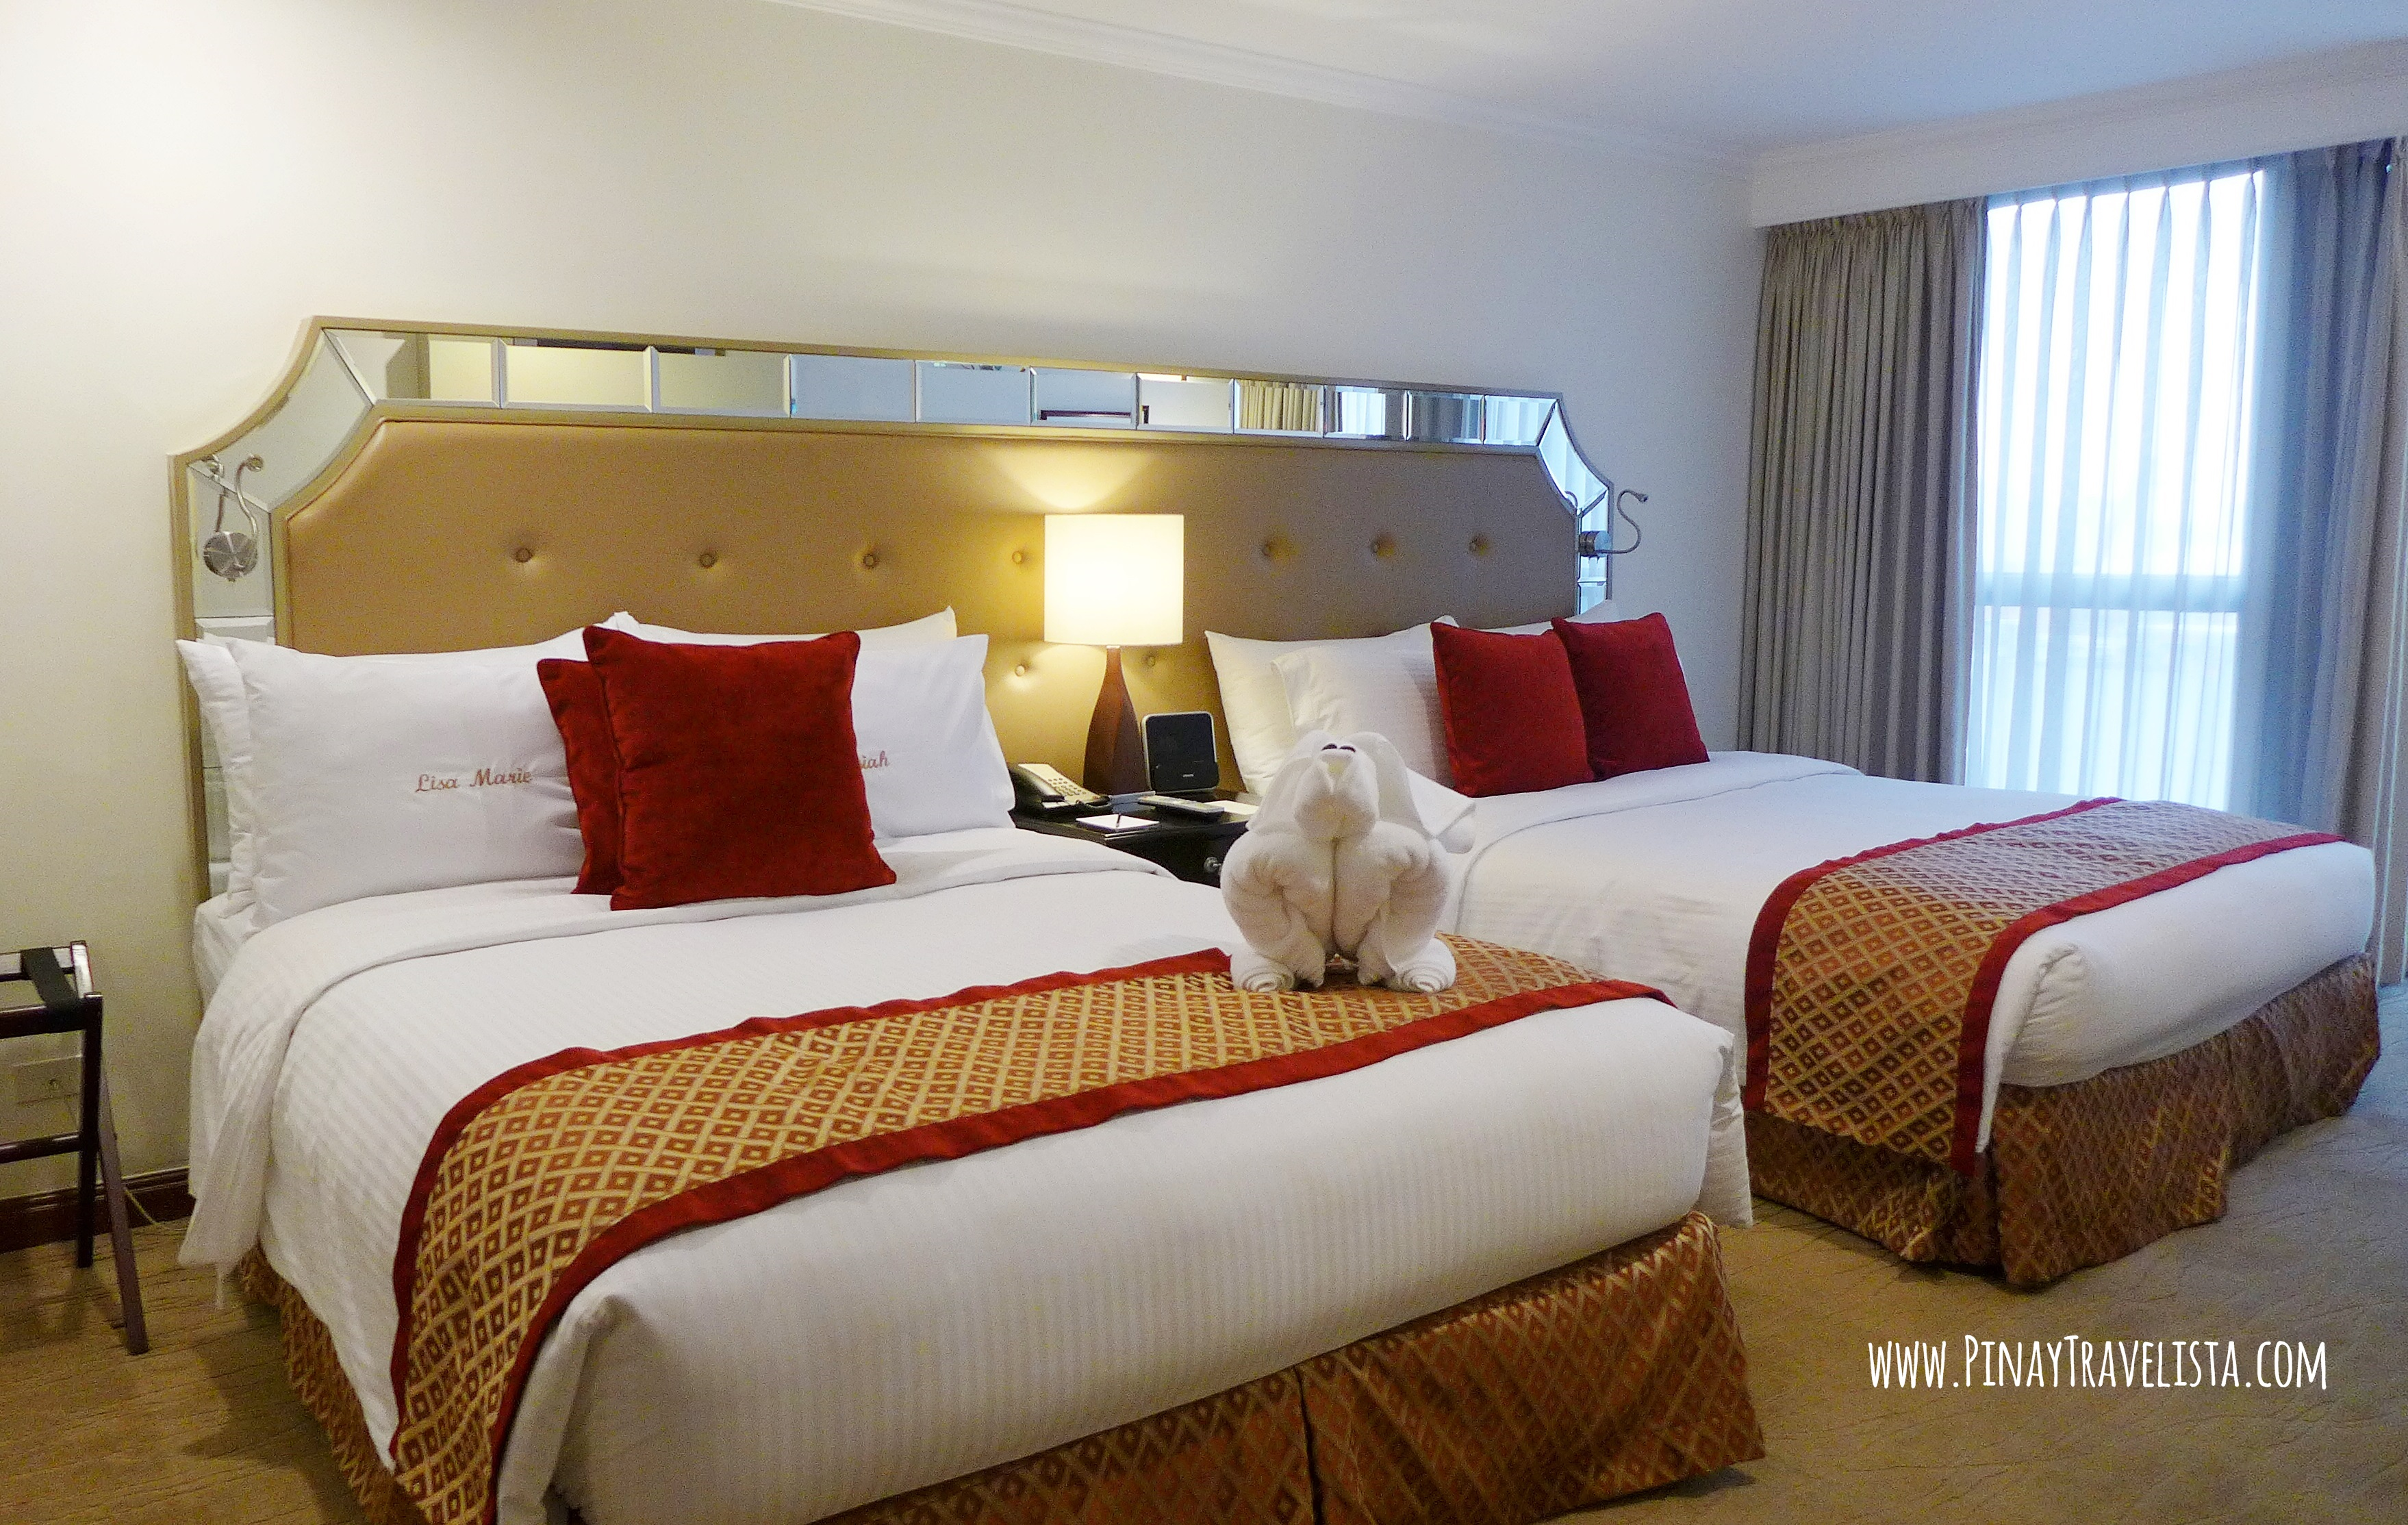 Discovery Suites Ortigas | Where To Stay in Metro Manila